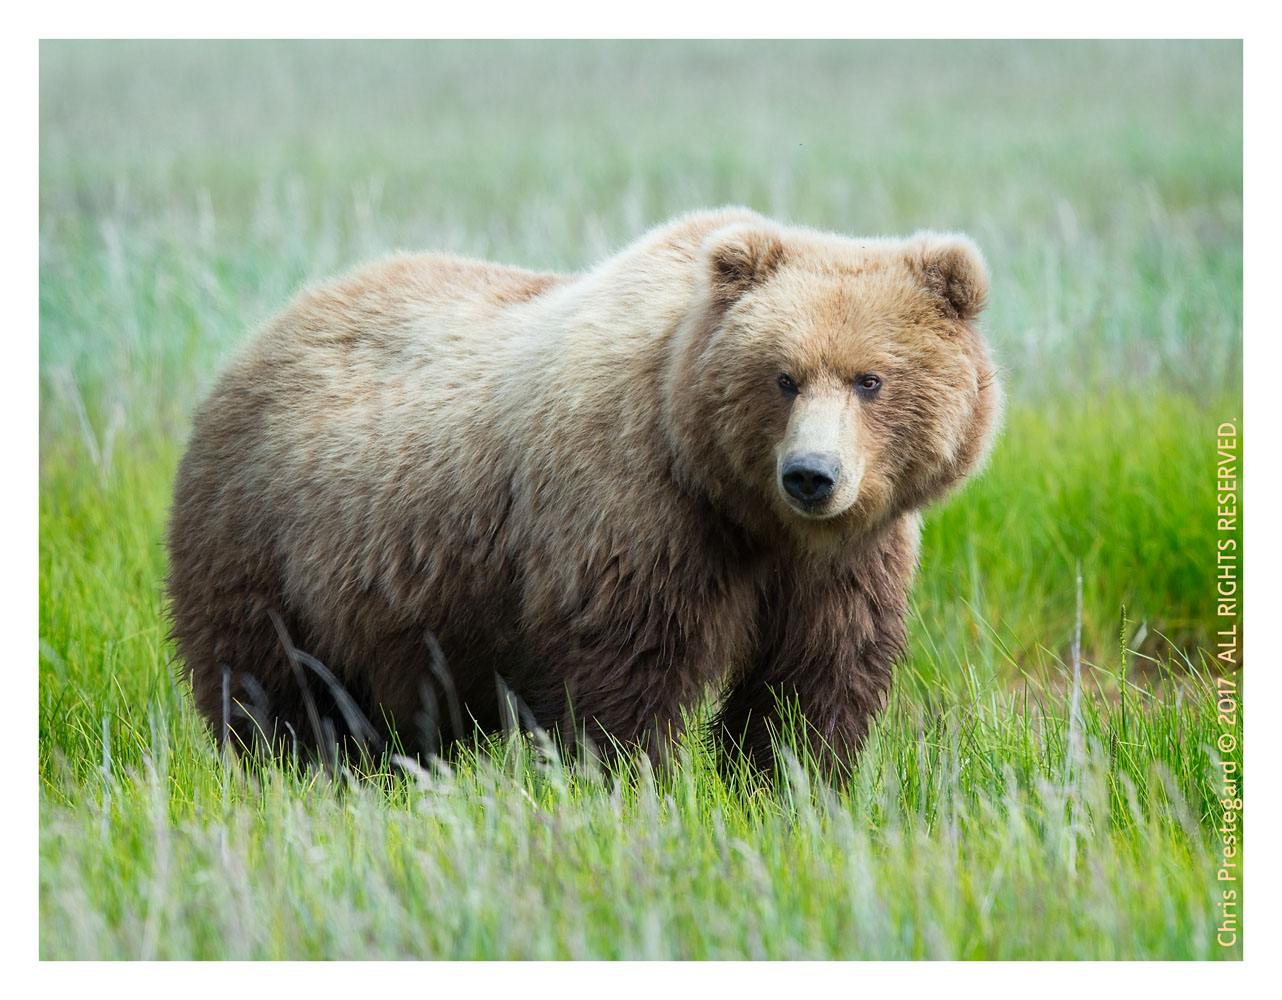 Coastal brown bear, Alaska June 2017